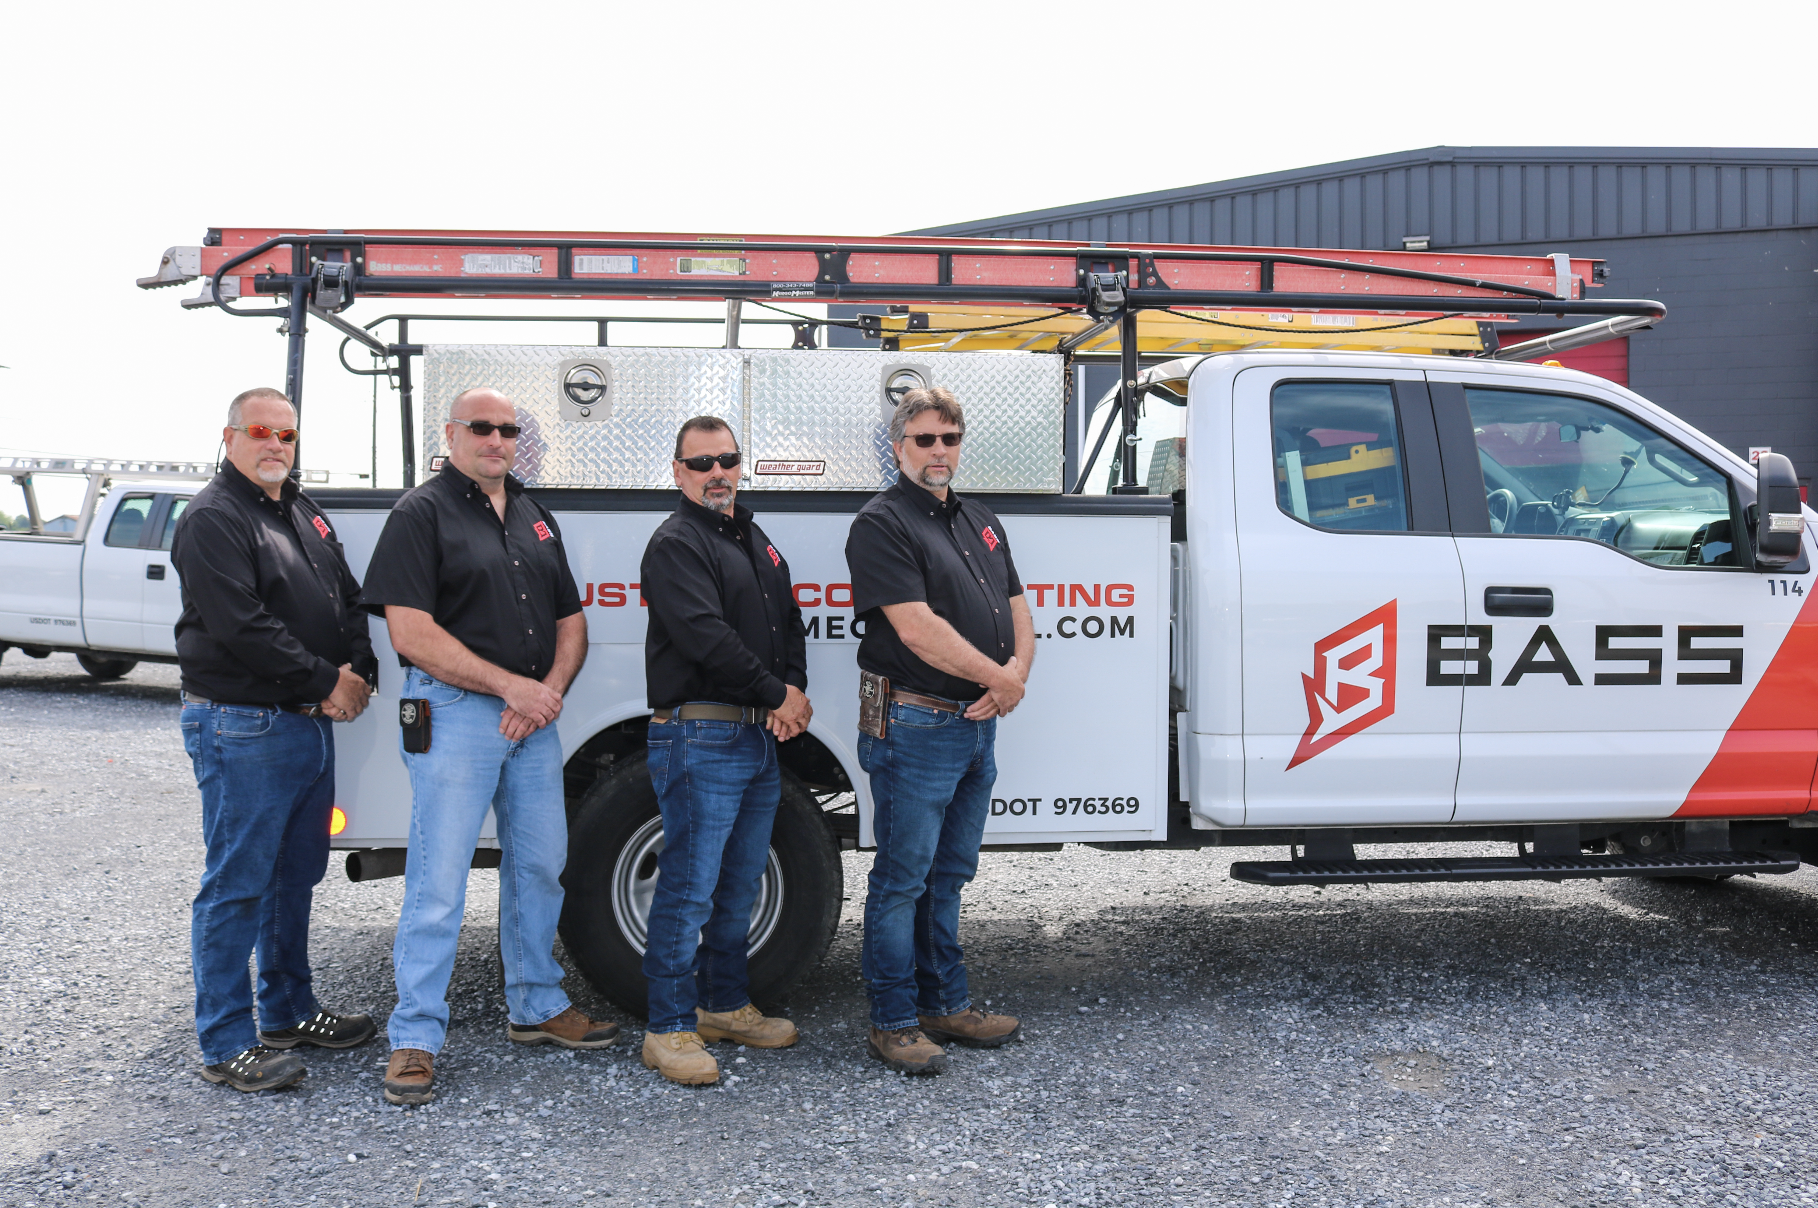 Bass' Electrical Management Team - From Left to Right: Bud Lyons, Rob Wenger, Michael Gehman, and Kevin Hackman.